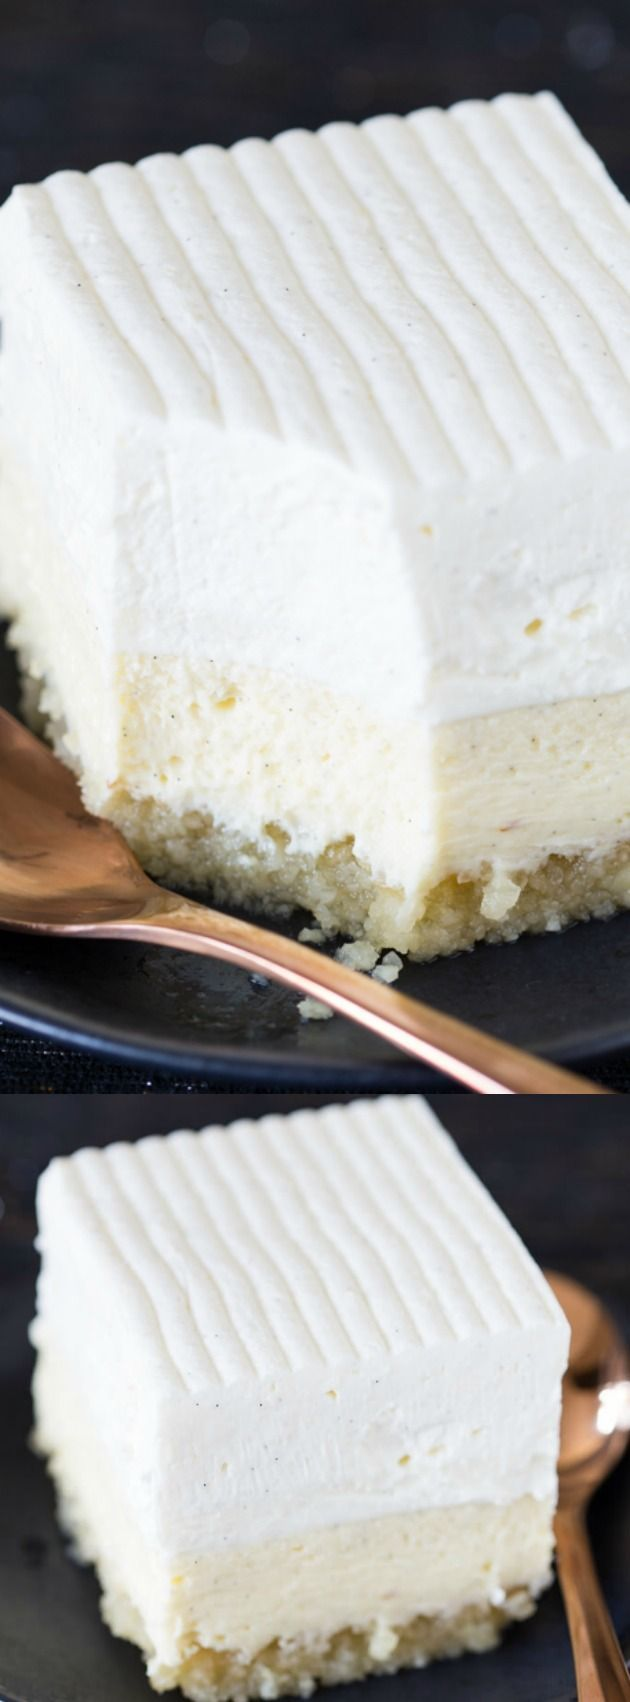 This Vanilla Bean Cheesecake recipe from Willow Bird Baking is a vanilla lover's dream come true! With it's buttery macadamia nut crust, creamy vanilla bean cheesecake, tangy sour cream topping, and fluffy vanilla bean whipped cream mousse watch out — because everyone will come back for seconds!